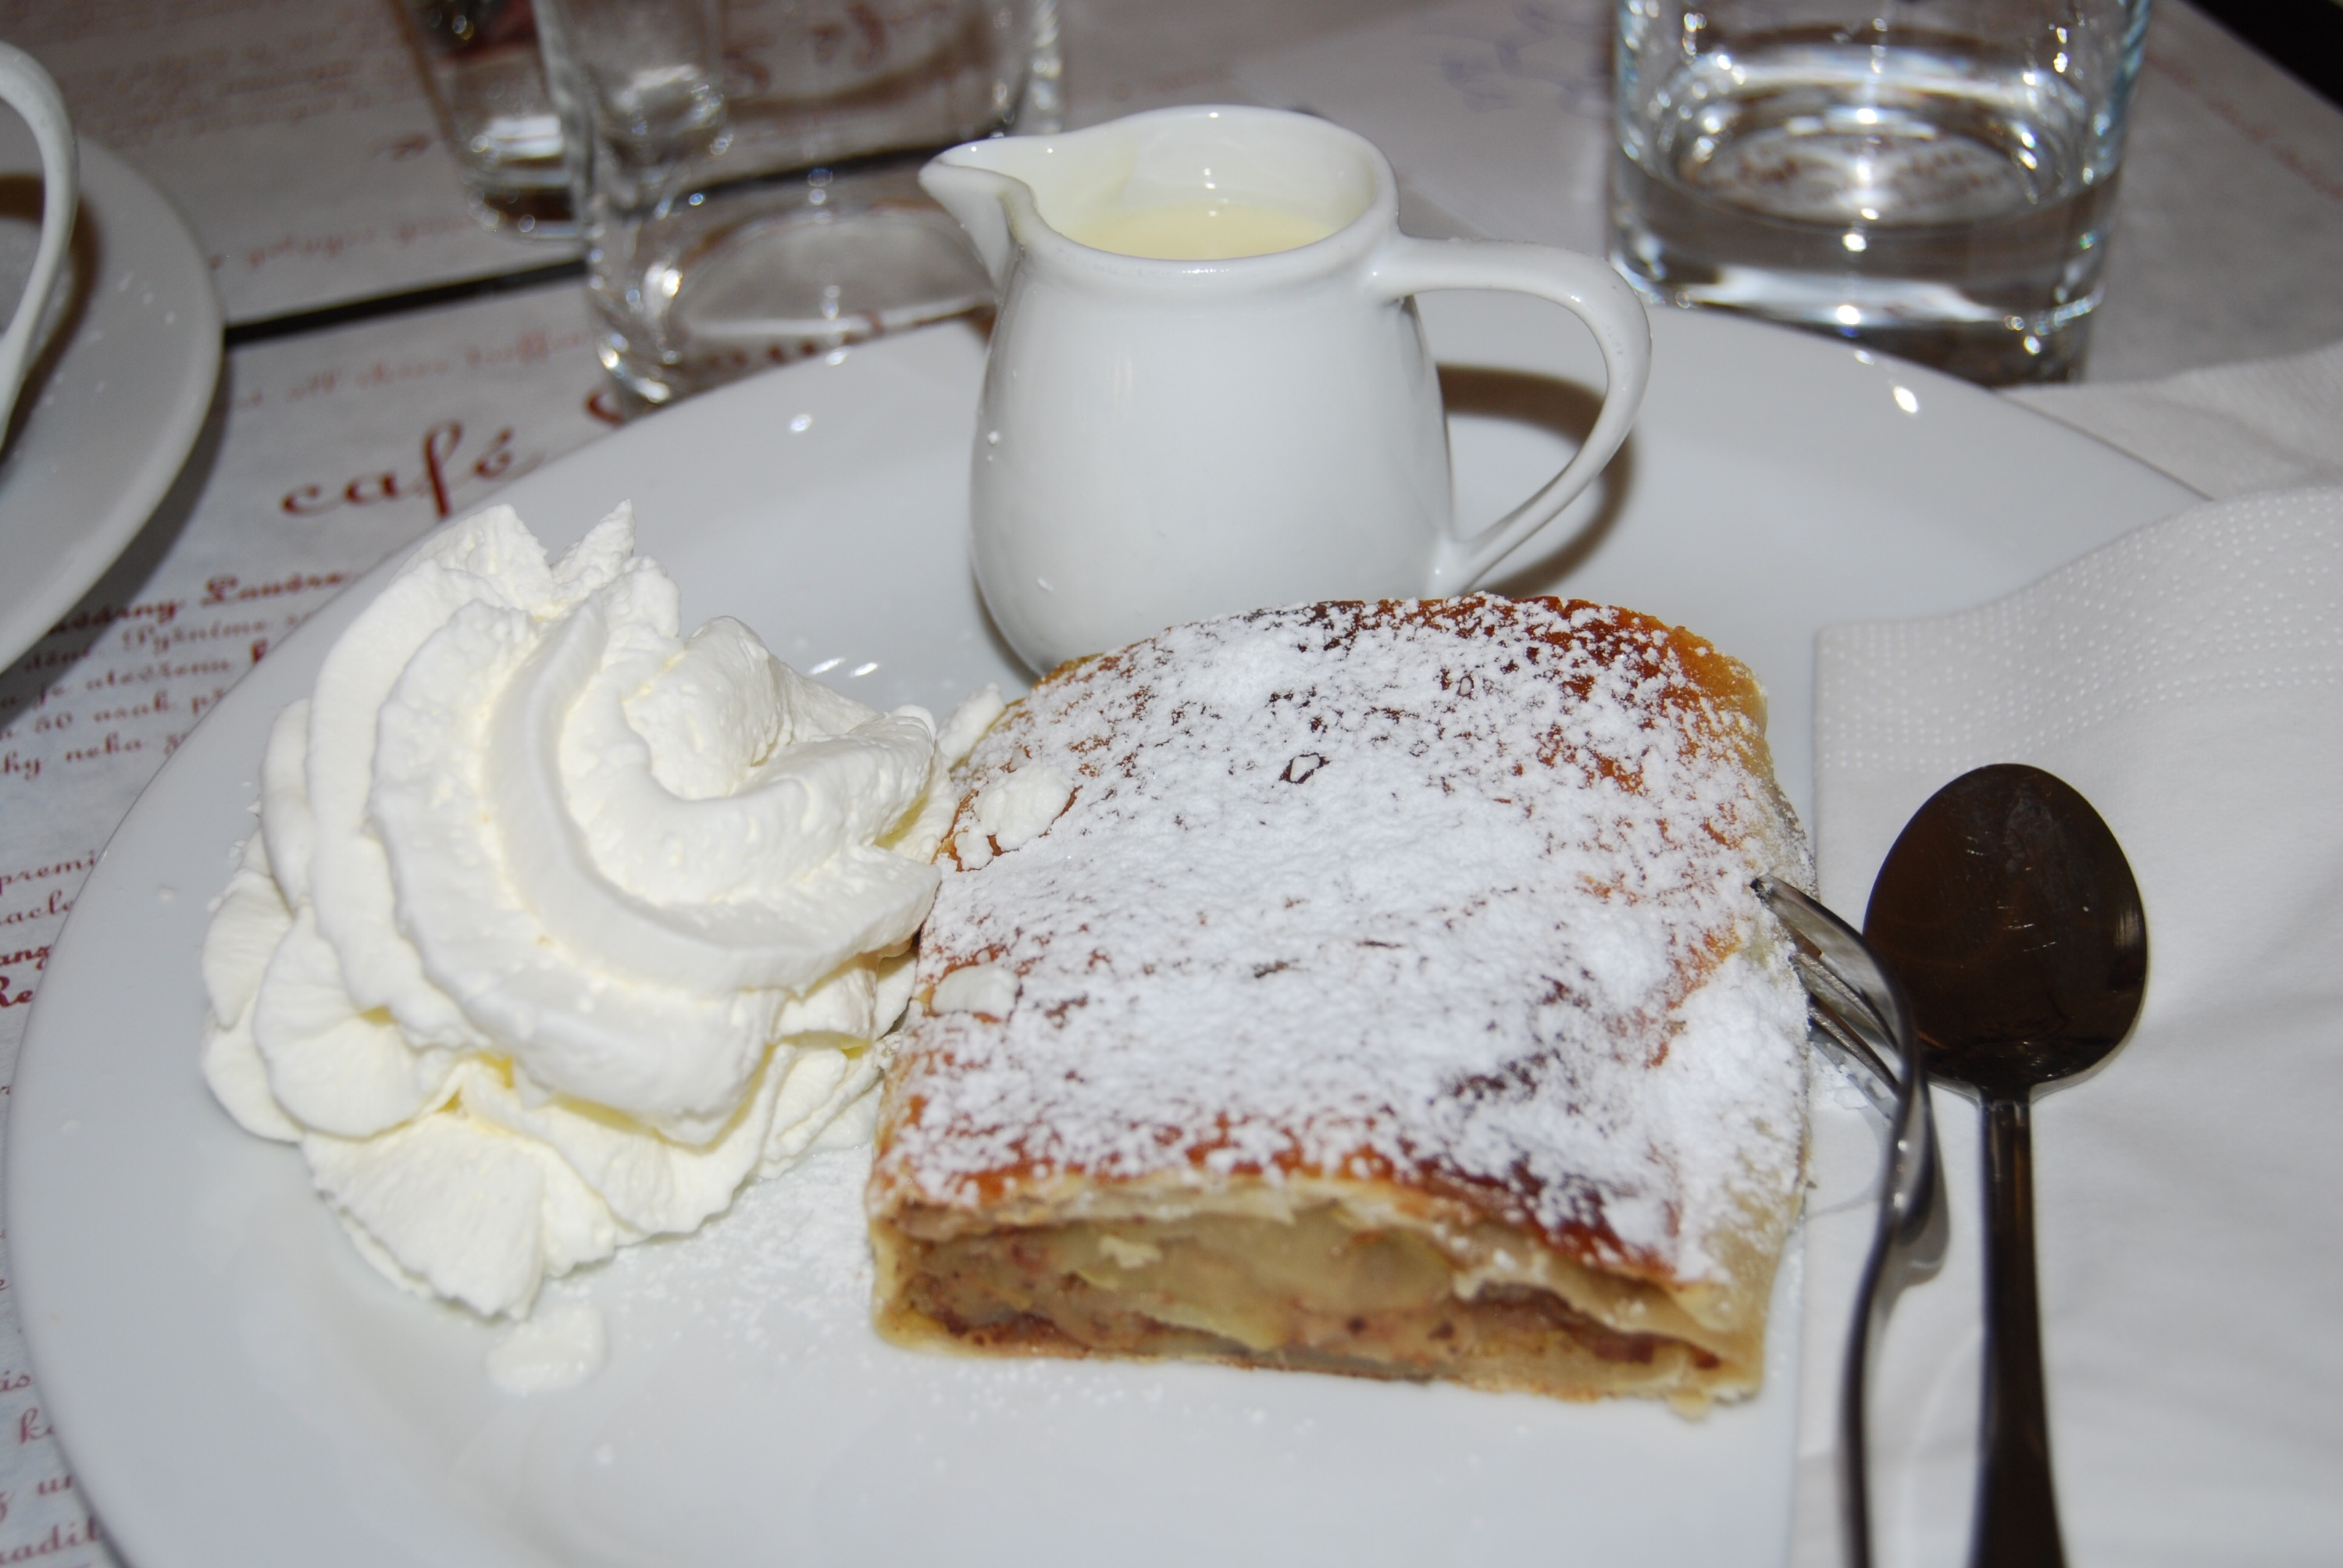 The Cafe Louvre's custard cream sauce makes their apple strudel special PieLadyLife.com